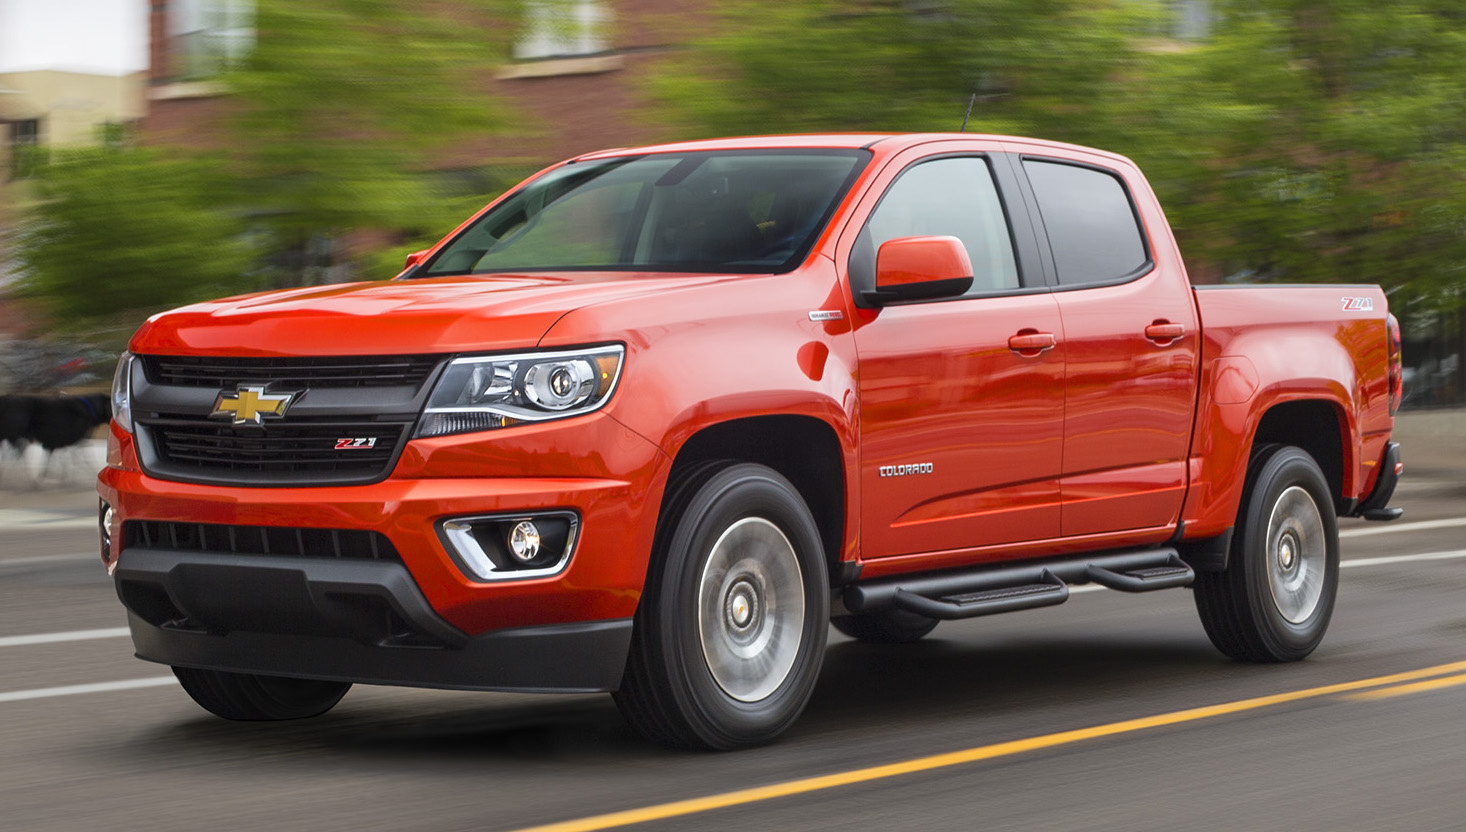 Cargurus Cars For Sale >> 2016 Chevrolet Colorado for Sale in your area - CarGurus